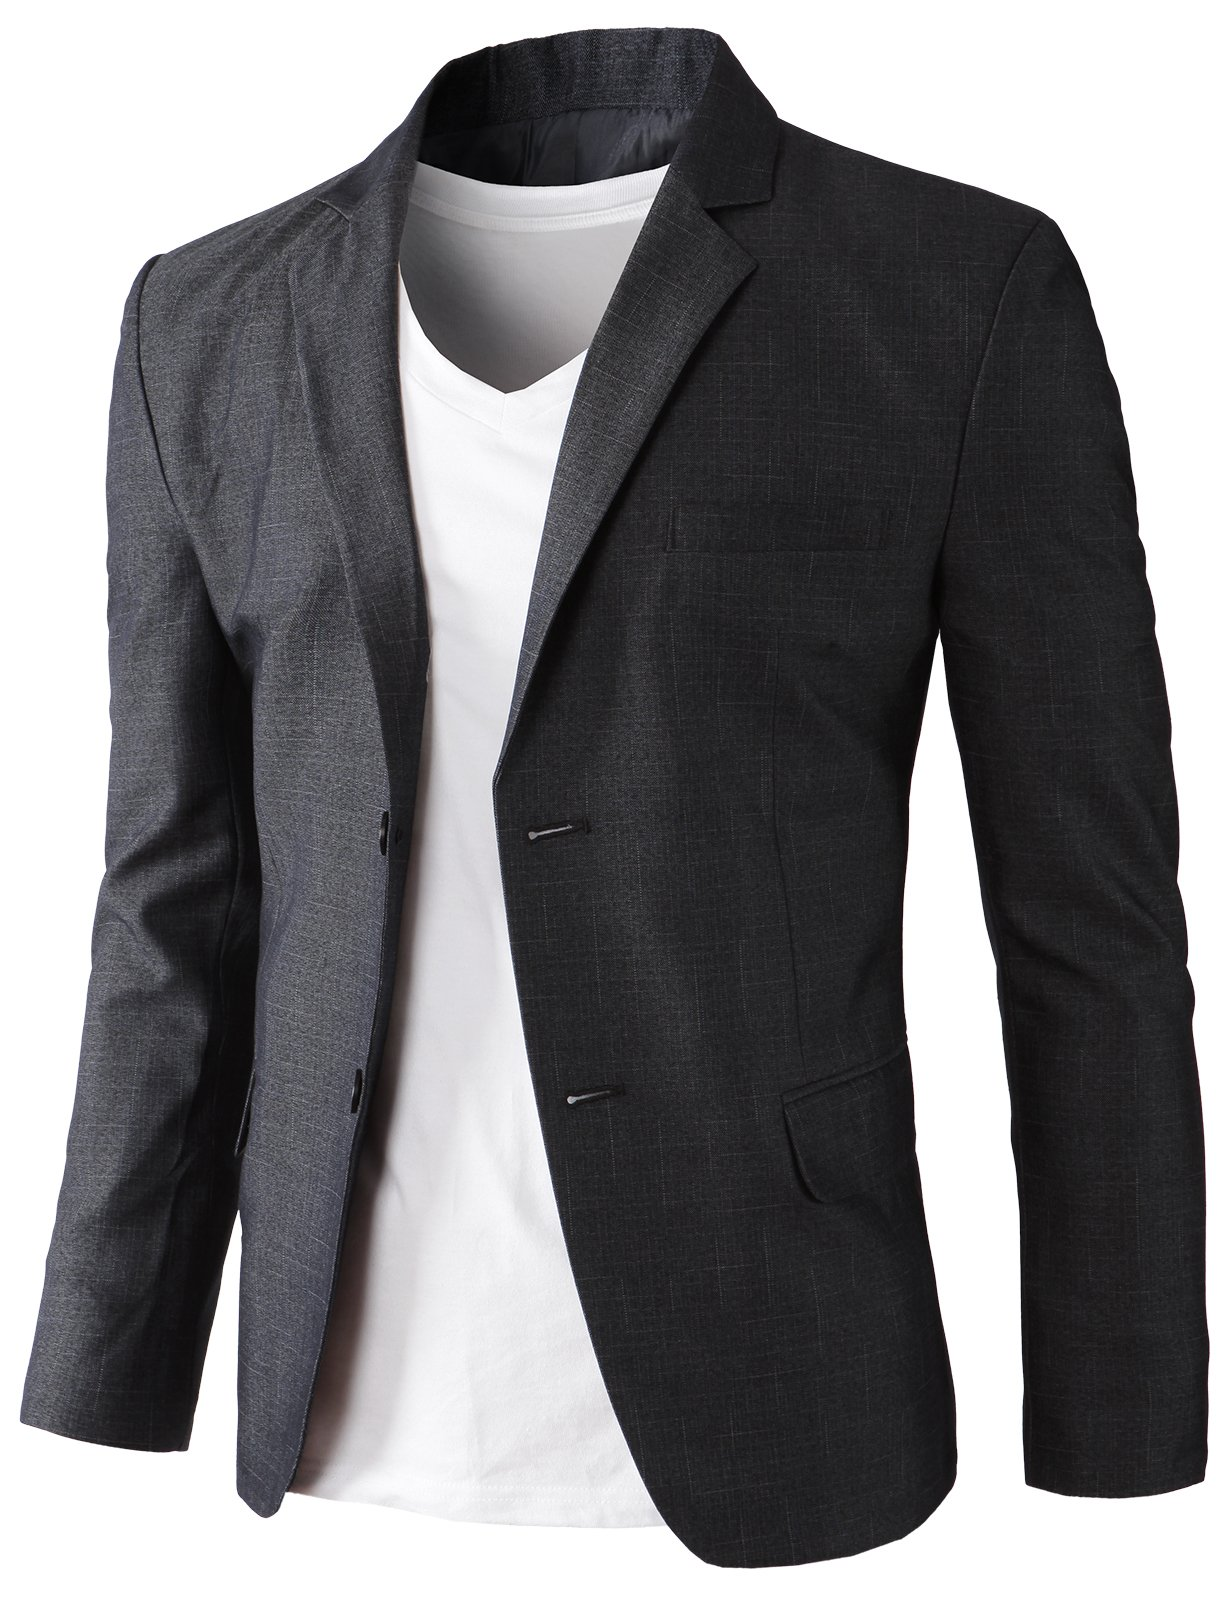 H2H Men's Casual Double-Breasted Jacket Slim Fit Blazer Charcoal US XL/Asia 3XK (KMOBL0125)